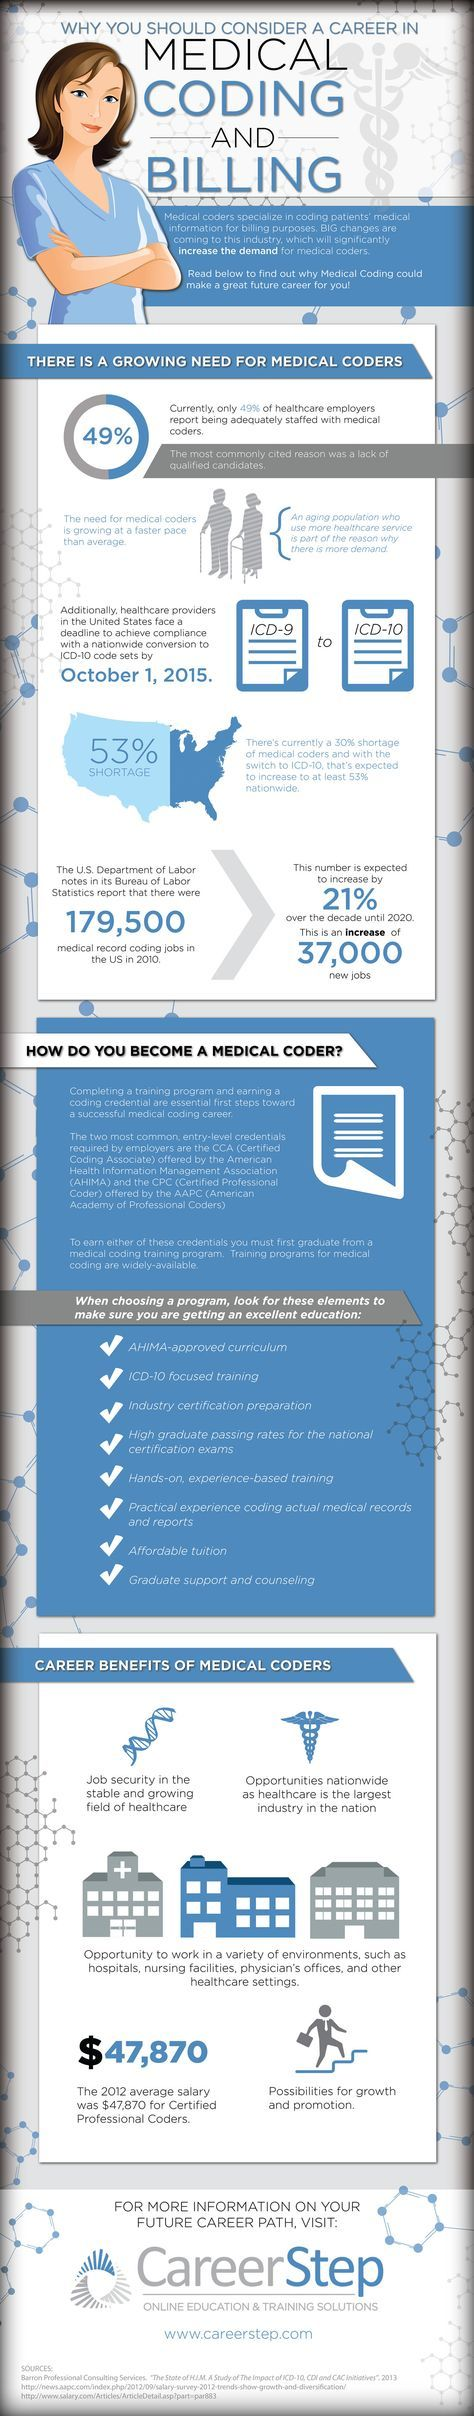 Best 25 medical billing training ideas on pinterest medical transcription medical billing homebased jobs xflitez Image collections